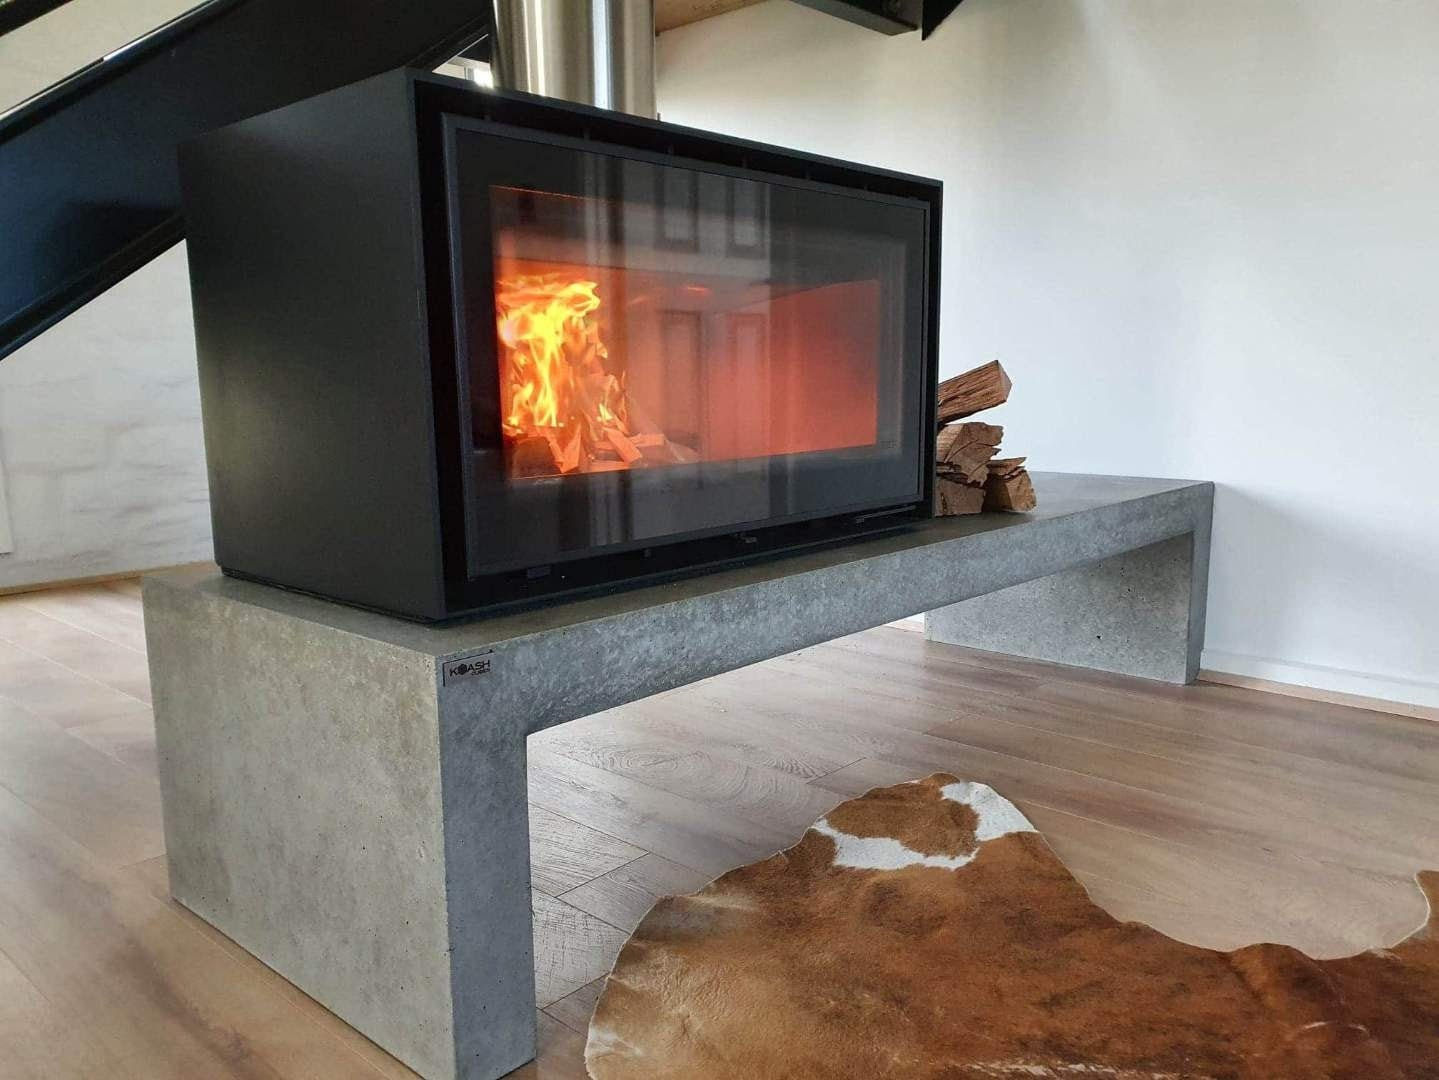 Concrete fire hearth 20.20m, open fire stand, fire plinth, fireplace stand.  Custom handmade polished floating hearth bench.